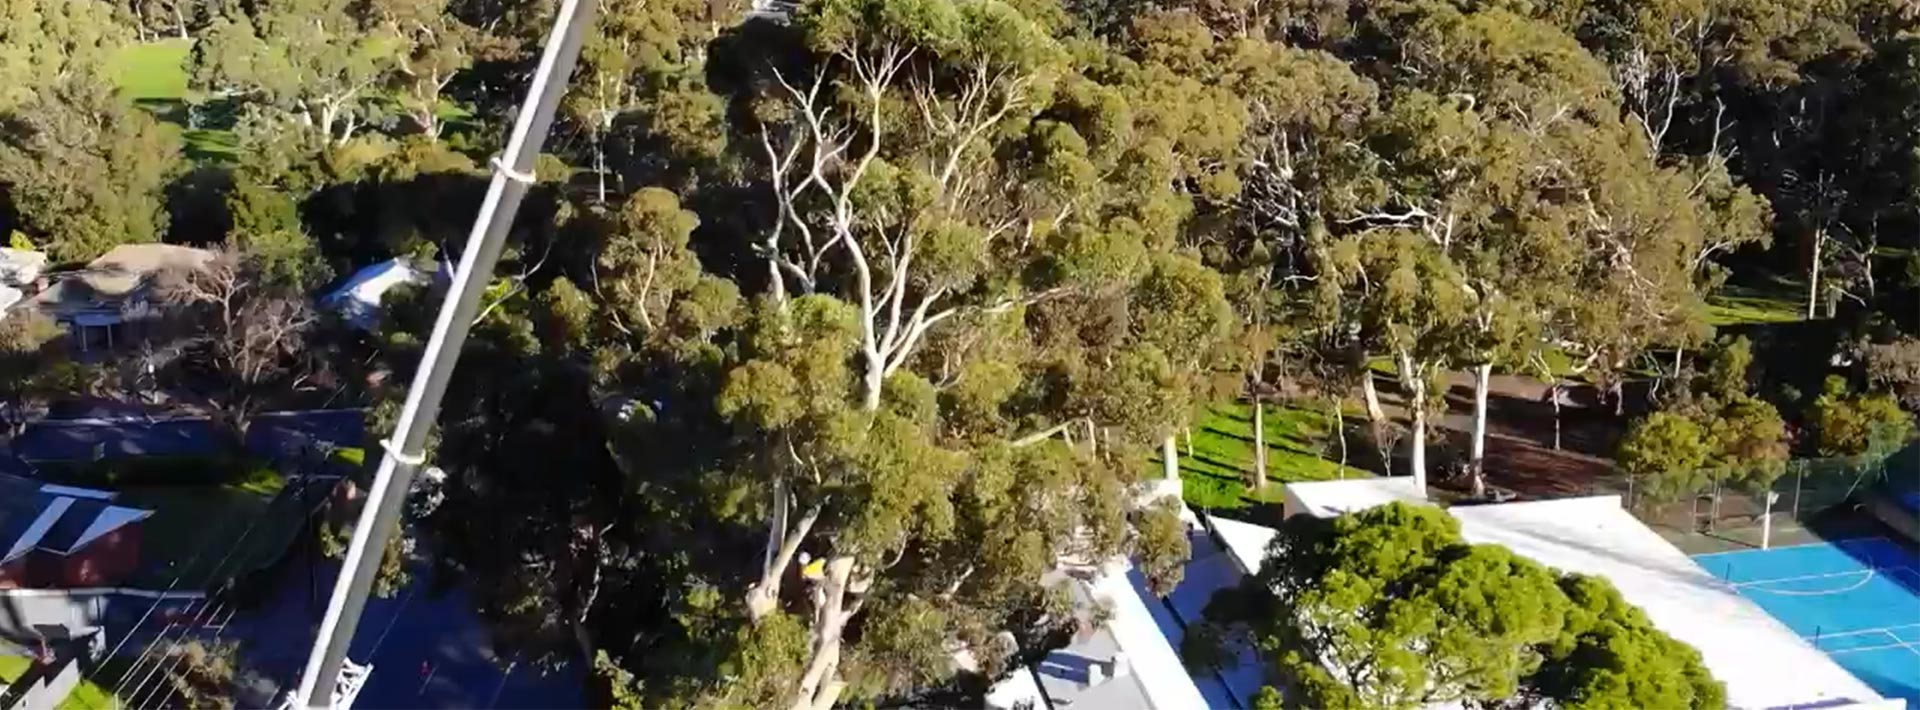 A crane lifting a large portion of a gum tree up over a school building